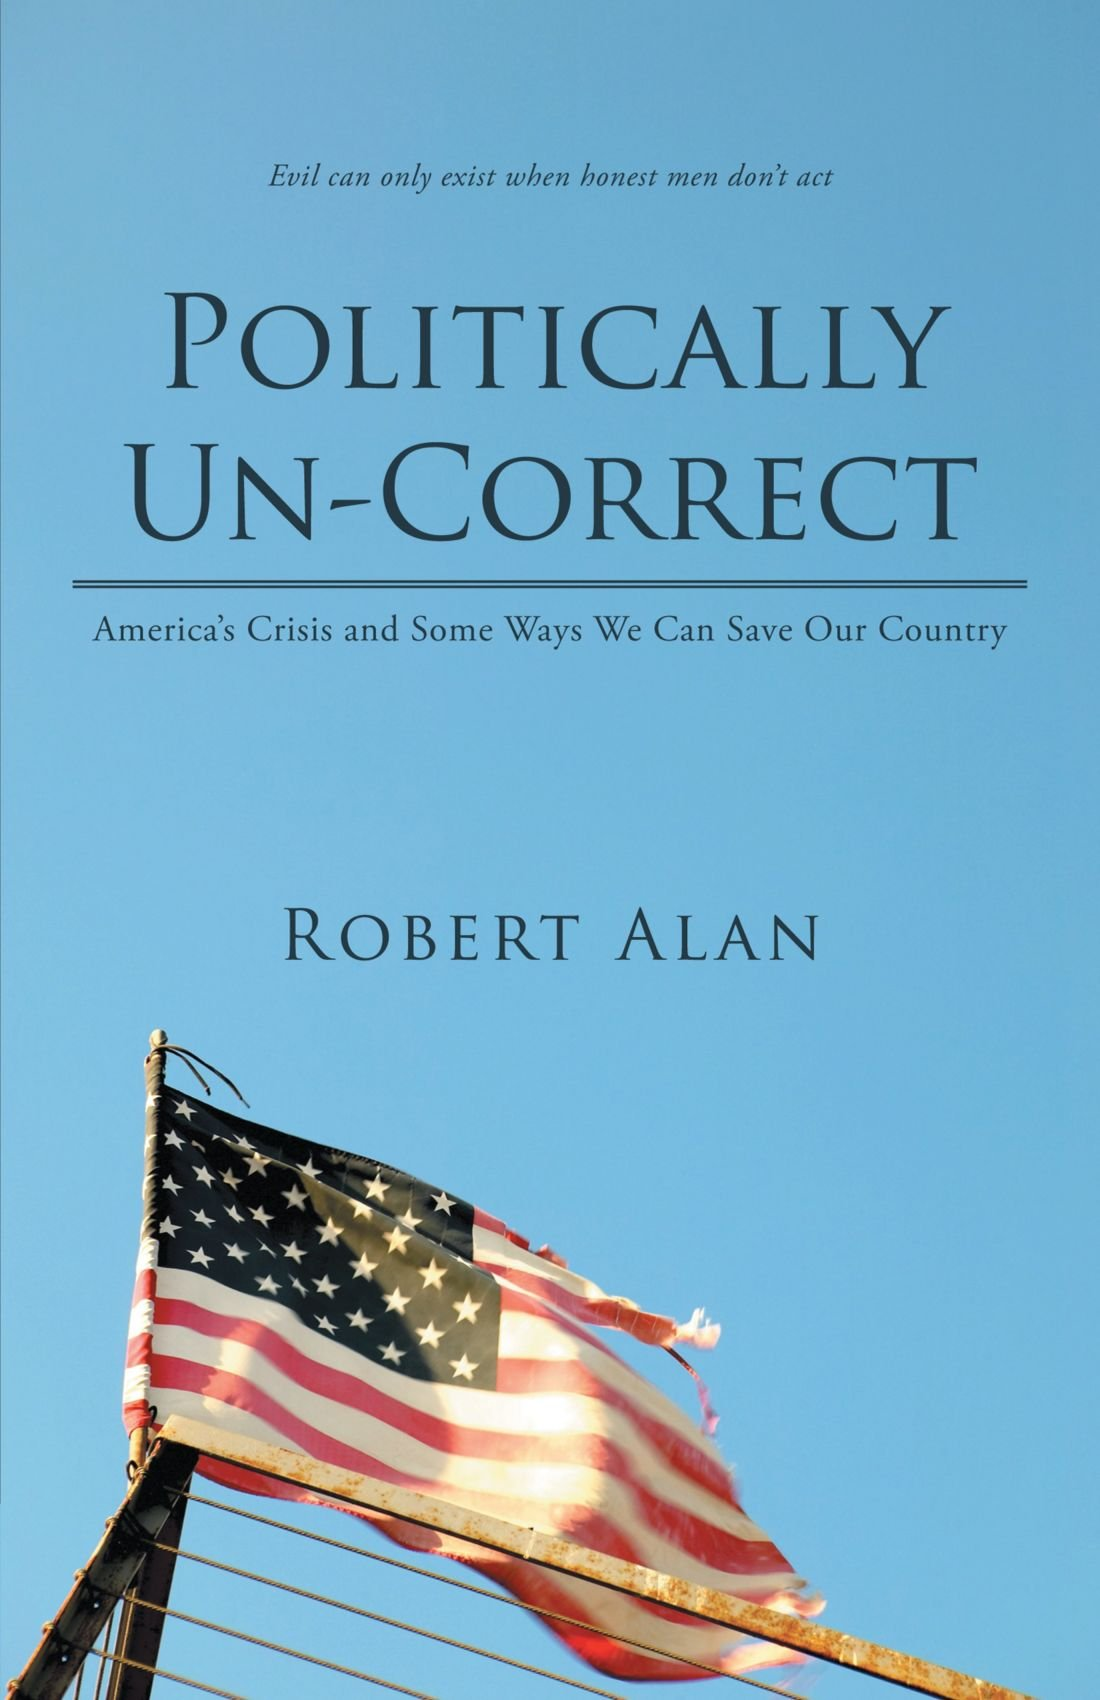 Politically Un-Correct: America's Crisis and Some Ways We Can Save Our Country